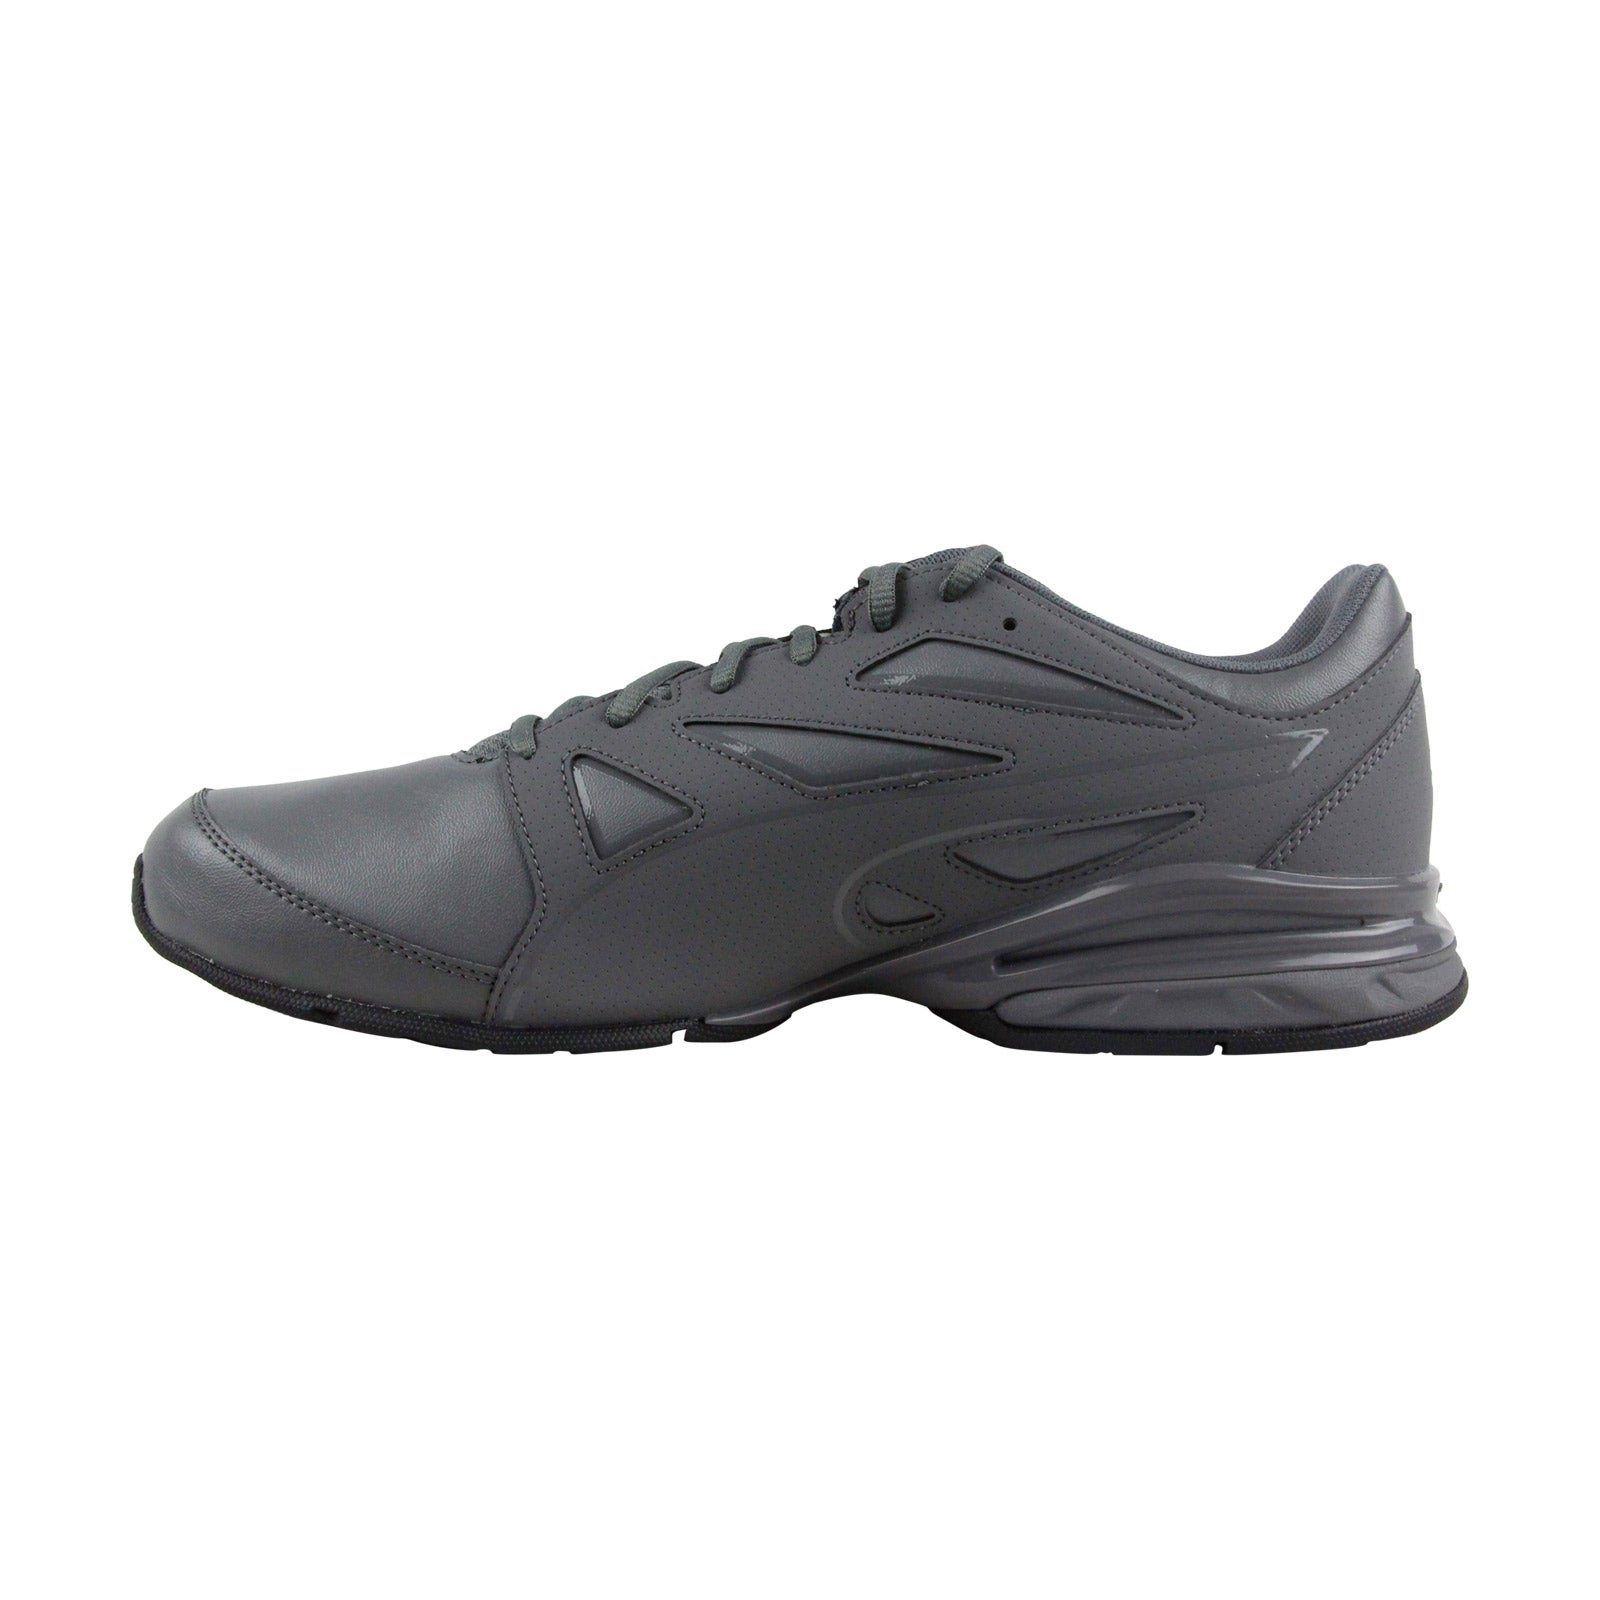 1d7906d793e5c2 Shop Puma Tazon Modern Fracture Mens Gray Synthetic Athletic Running Shoes  - Free Shipping On Orders Over  45 - Overstock.com - 22348856